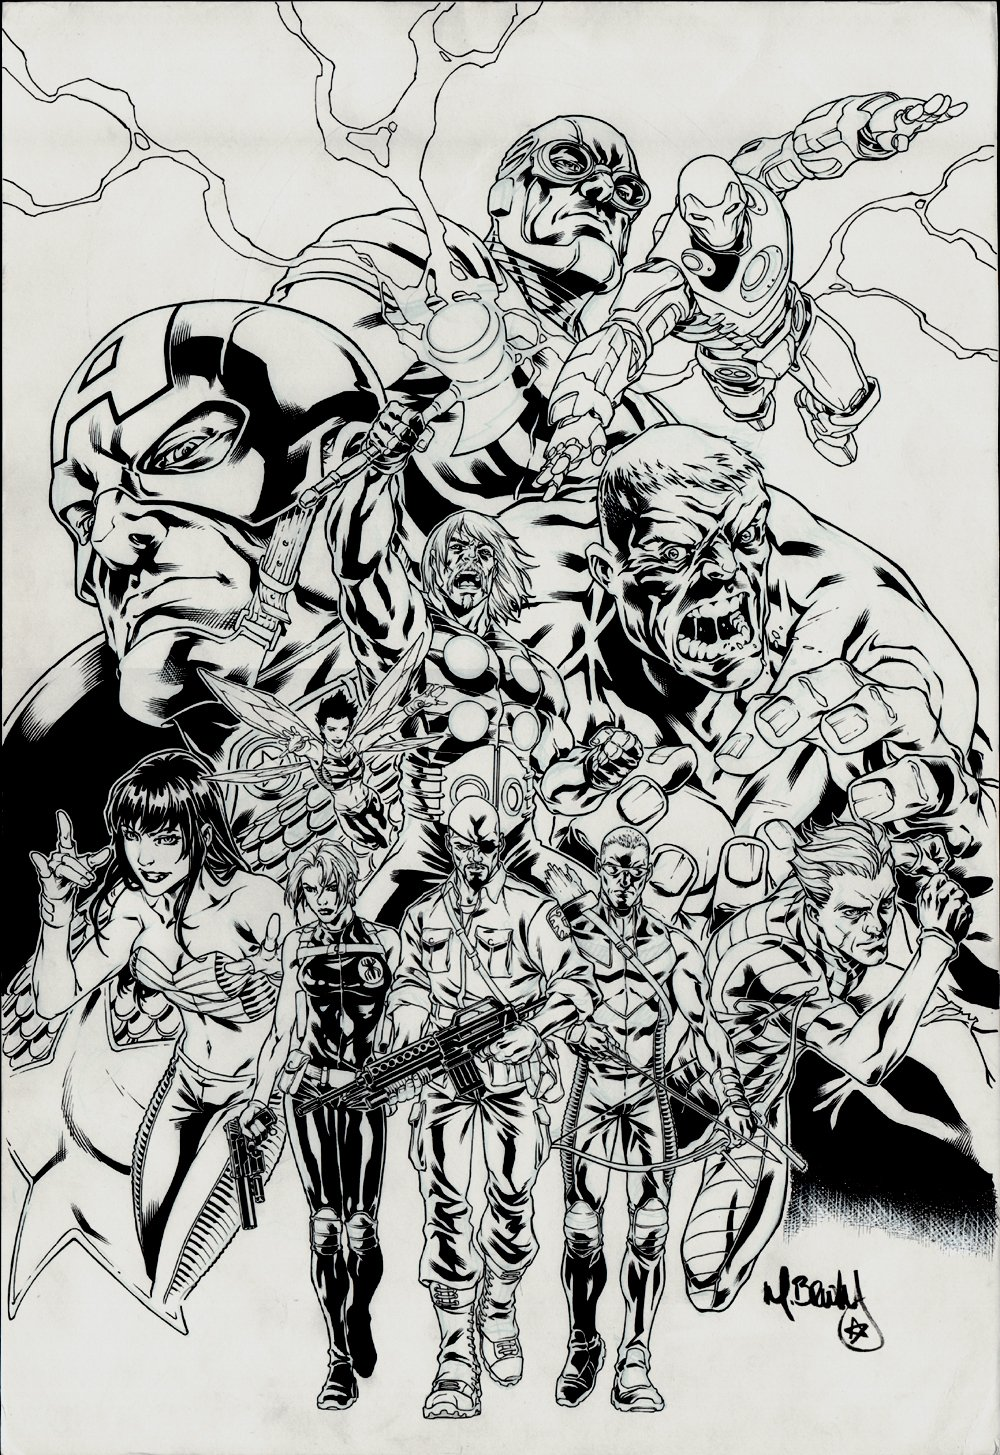 Ultimates Saga #1 Cover (LARGE ART) 2007